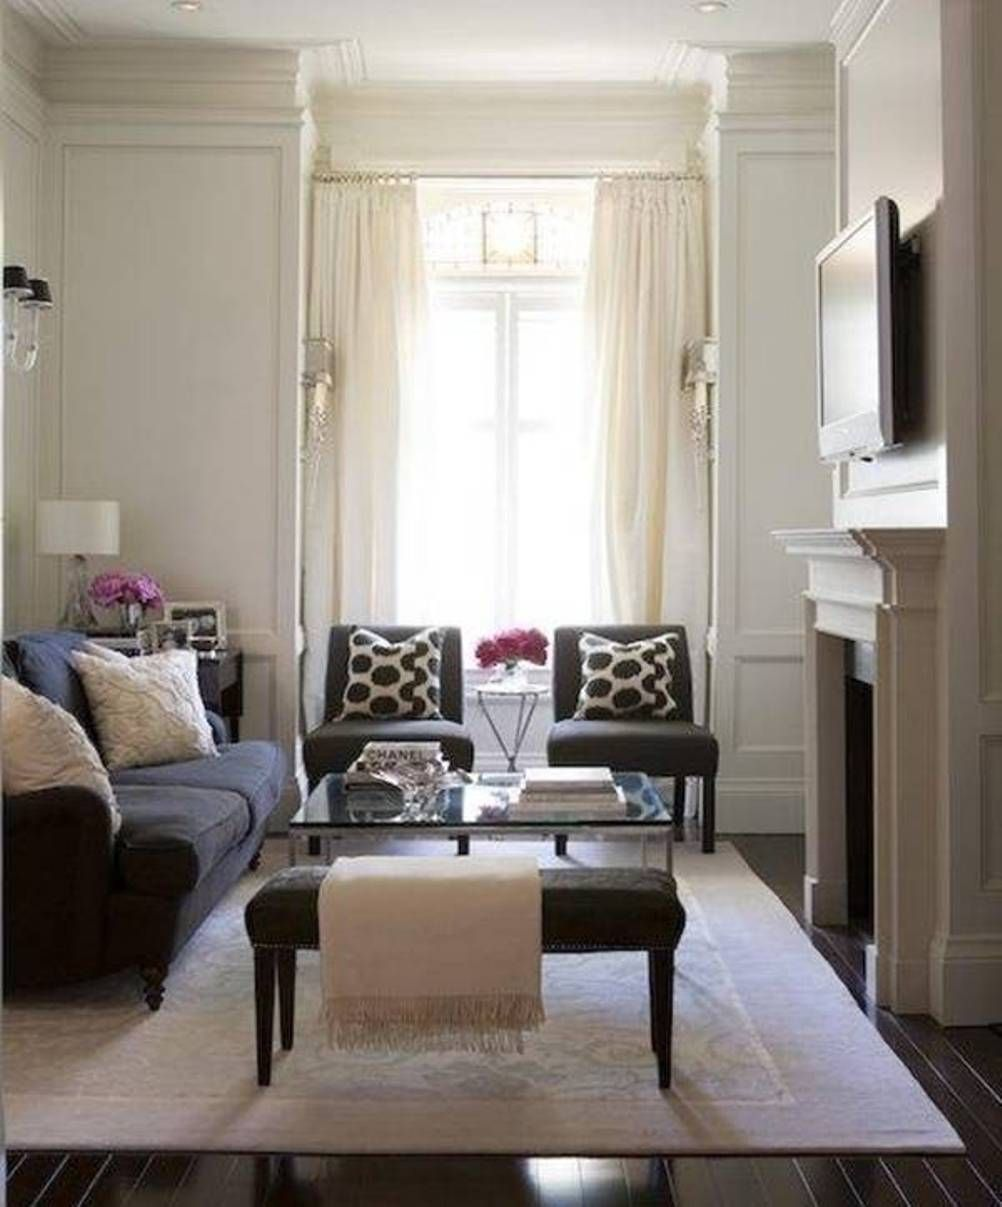 Living Room , Great Small Living Room Ideas : Small Living Room Ideas With Small Furniture Like Loveseat And Armless Chairs And Bench With Lcd Over The Mantel